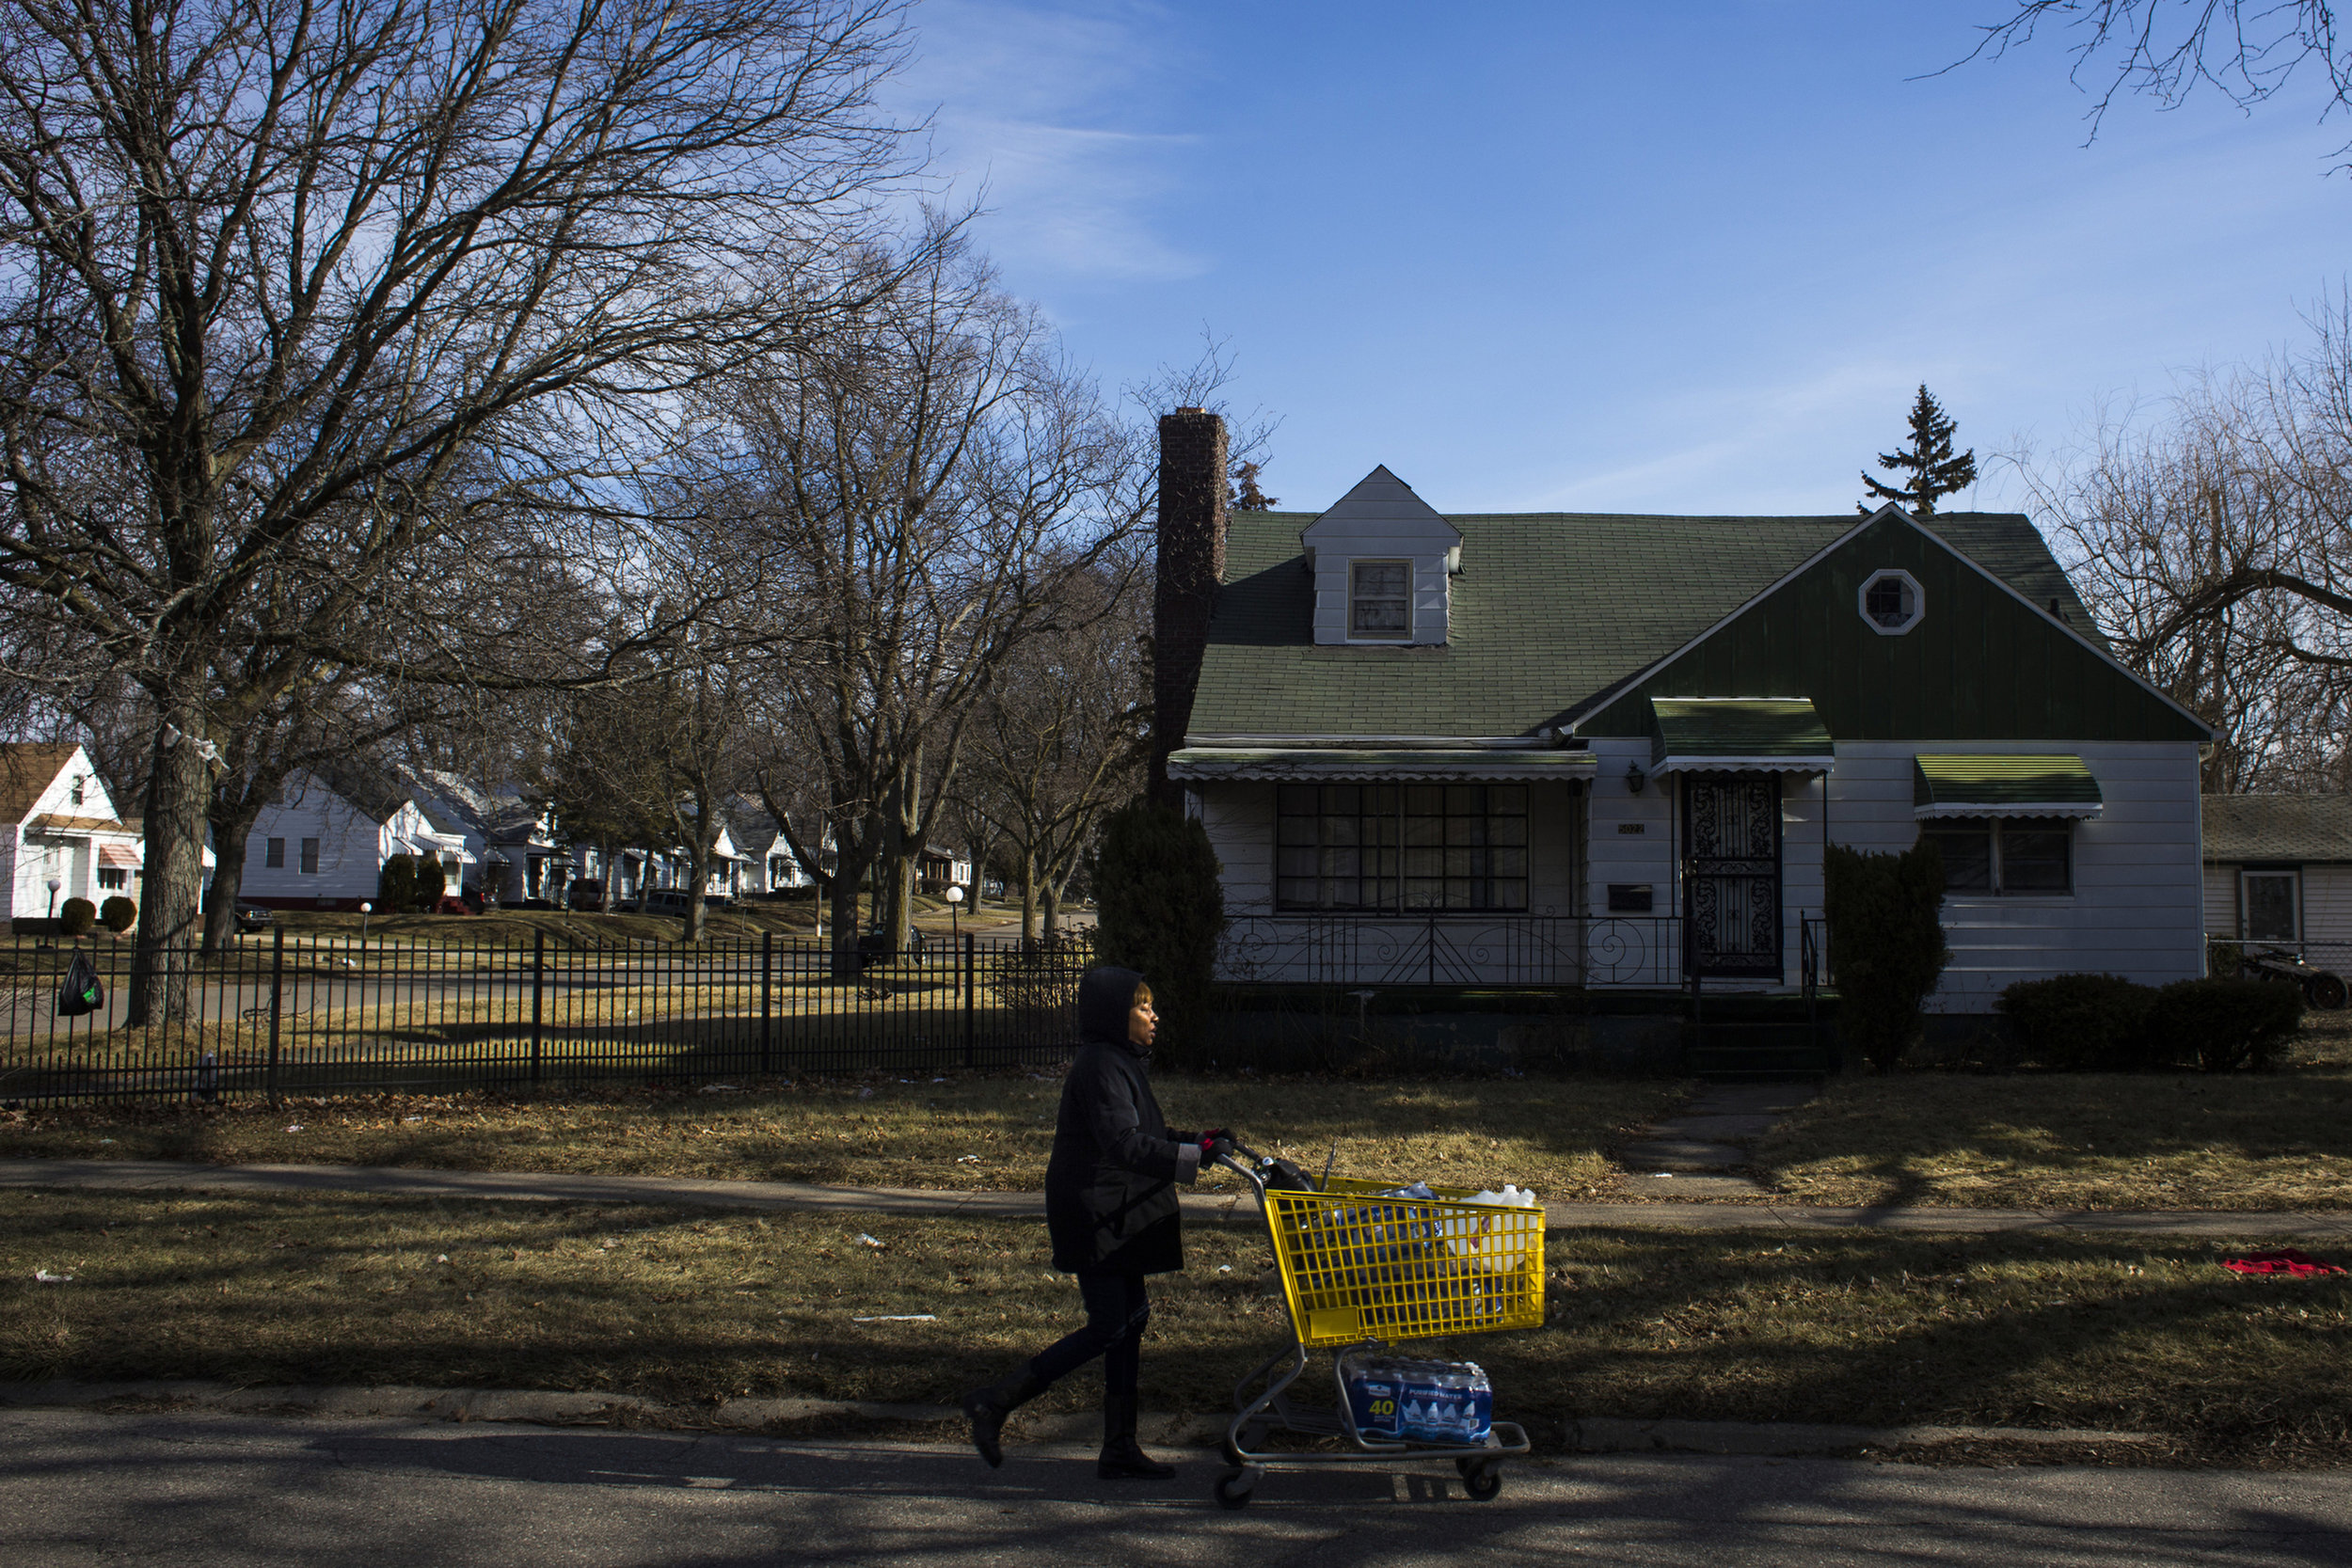 Brenda Briggs, a native of Flint, Mich., pushes a grocery cart full of bottled water to her home, which was several blocks away from a water drive put on by volunteers from Syracuse and Buffalo, New York, in the North side of Flint on Saturday, February 6, 2016. Briggs, a mother of three and grandmother to four, made the journey to nearby water resource centers every week despite arthritis pains and maintaining her diabetes.